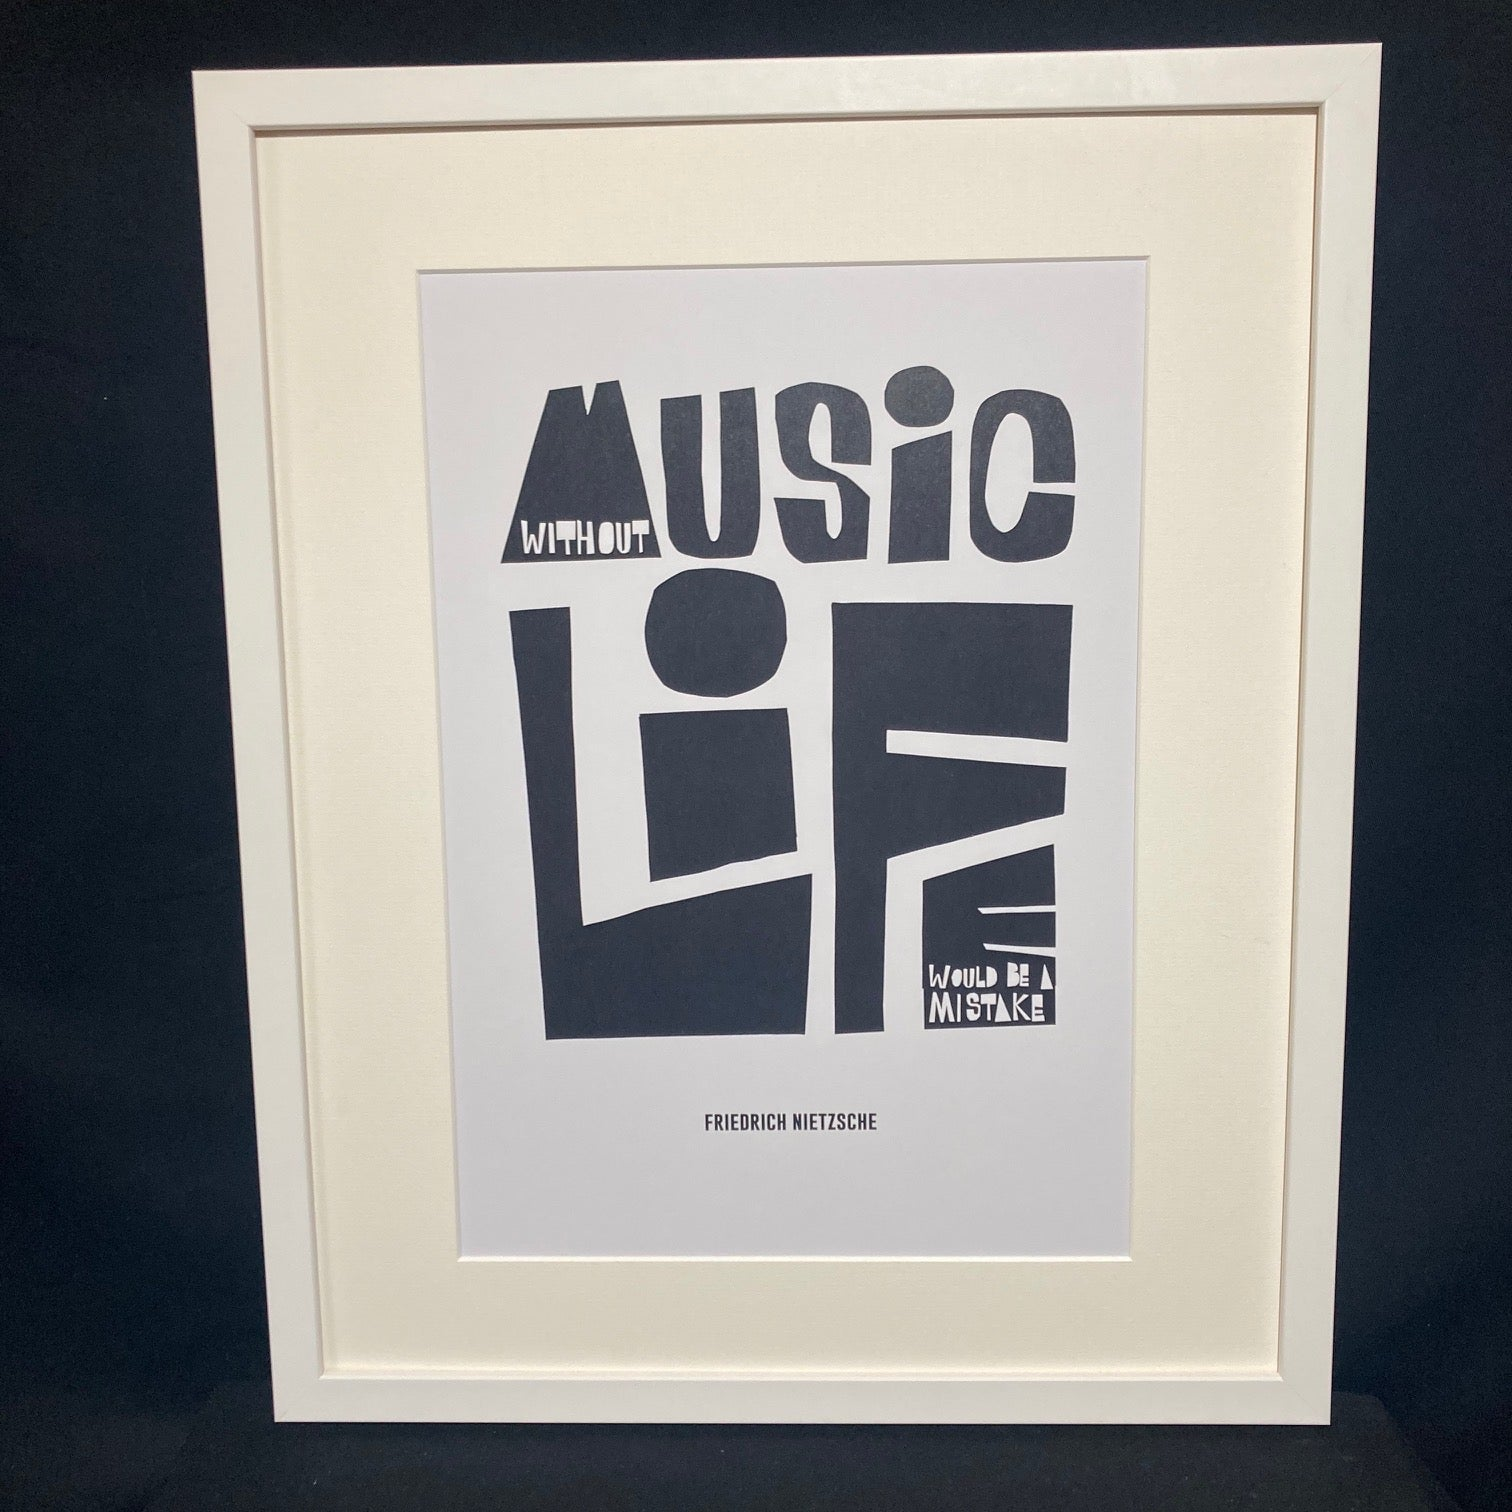 'Without Music Life Would Be A Mistake' Art Print